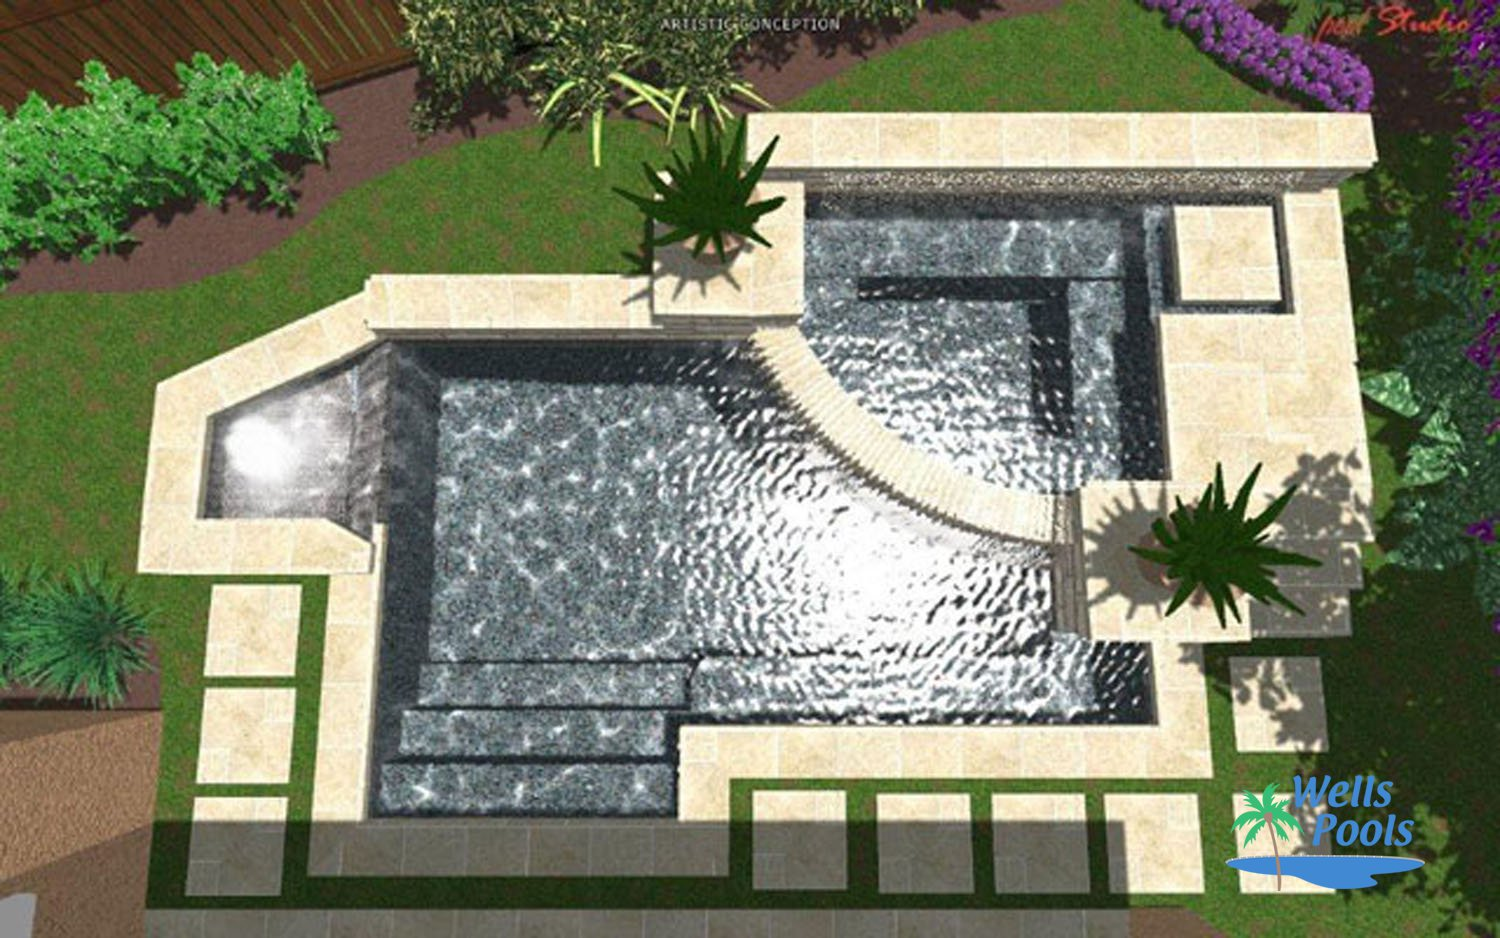 3d pool design sacramento folsom el dorado hills roseville for Pool design roseville ca